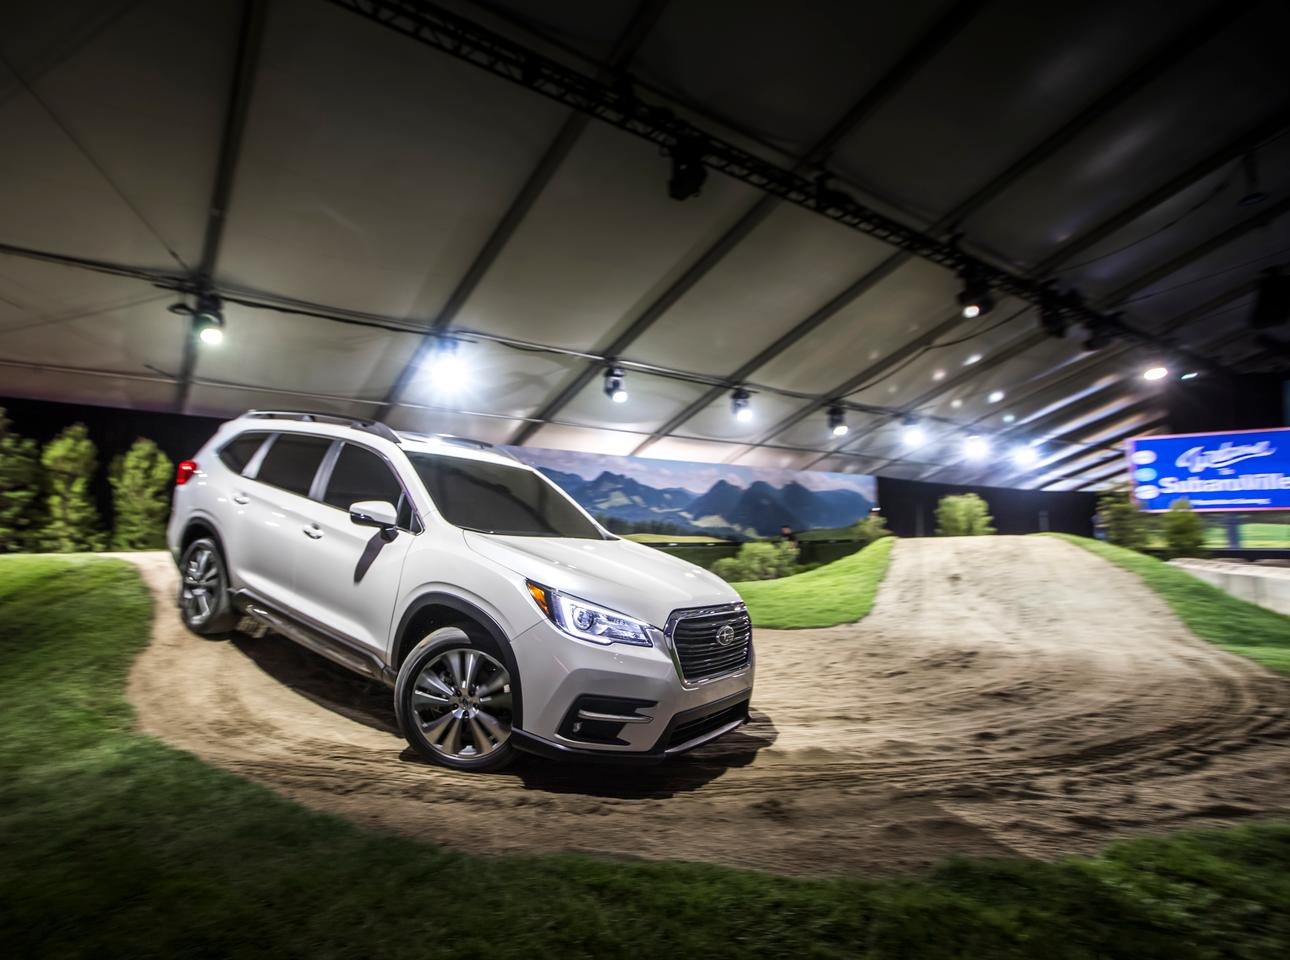 The newest Subaru is the largest vehicle the company makes and enters the North American market as a large, family-sized offering